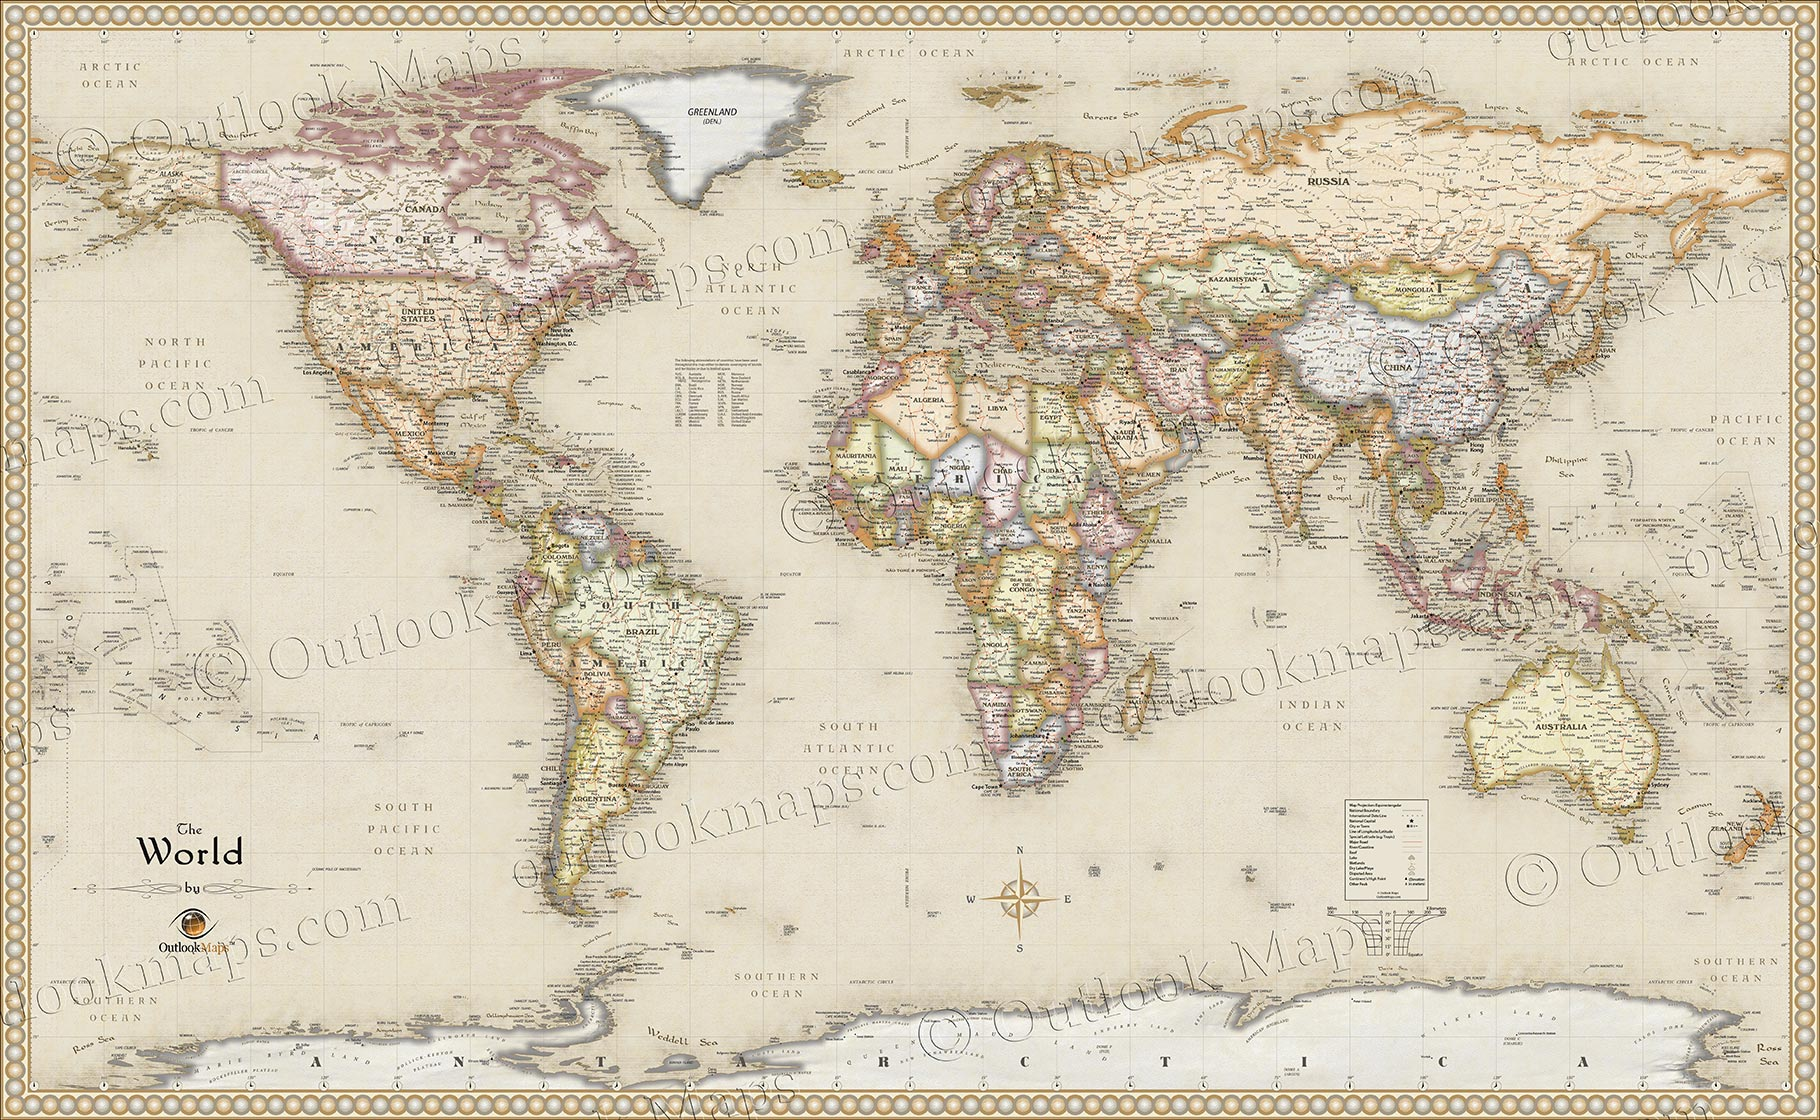 World antique style map current map in old vintage map style antique style world wall map gumiabroncs Choice Image